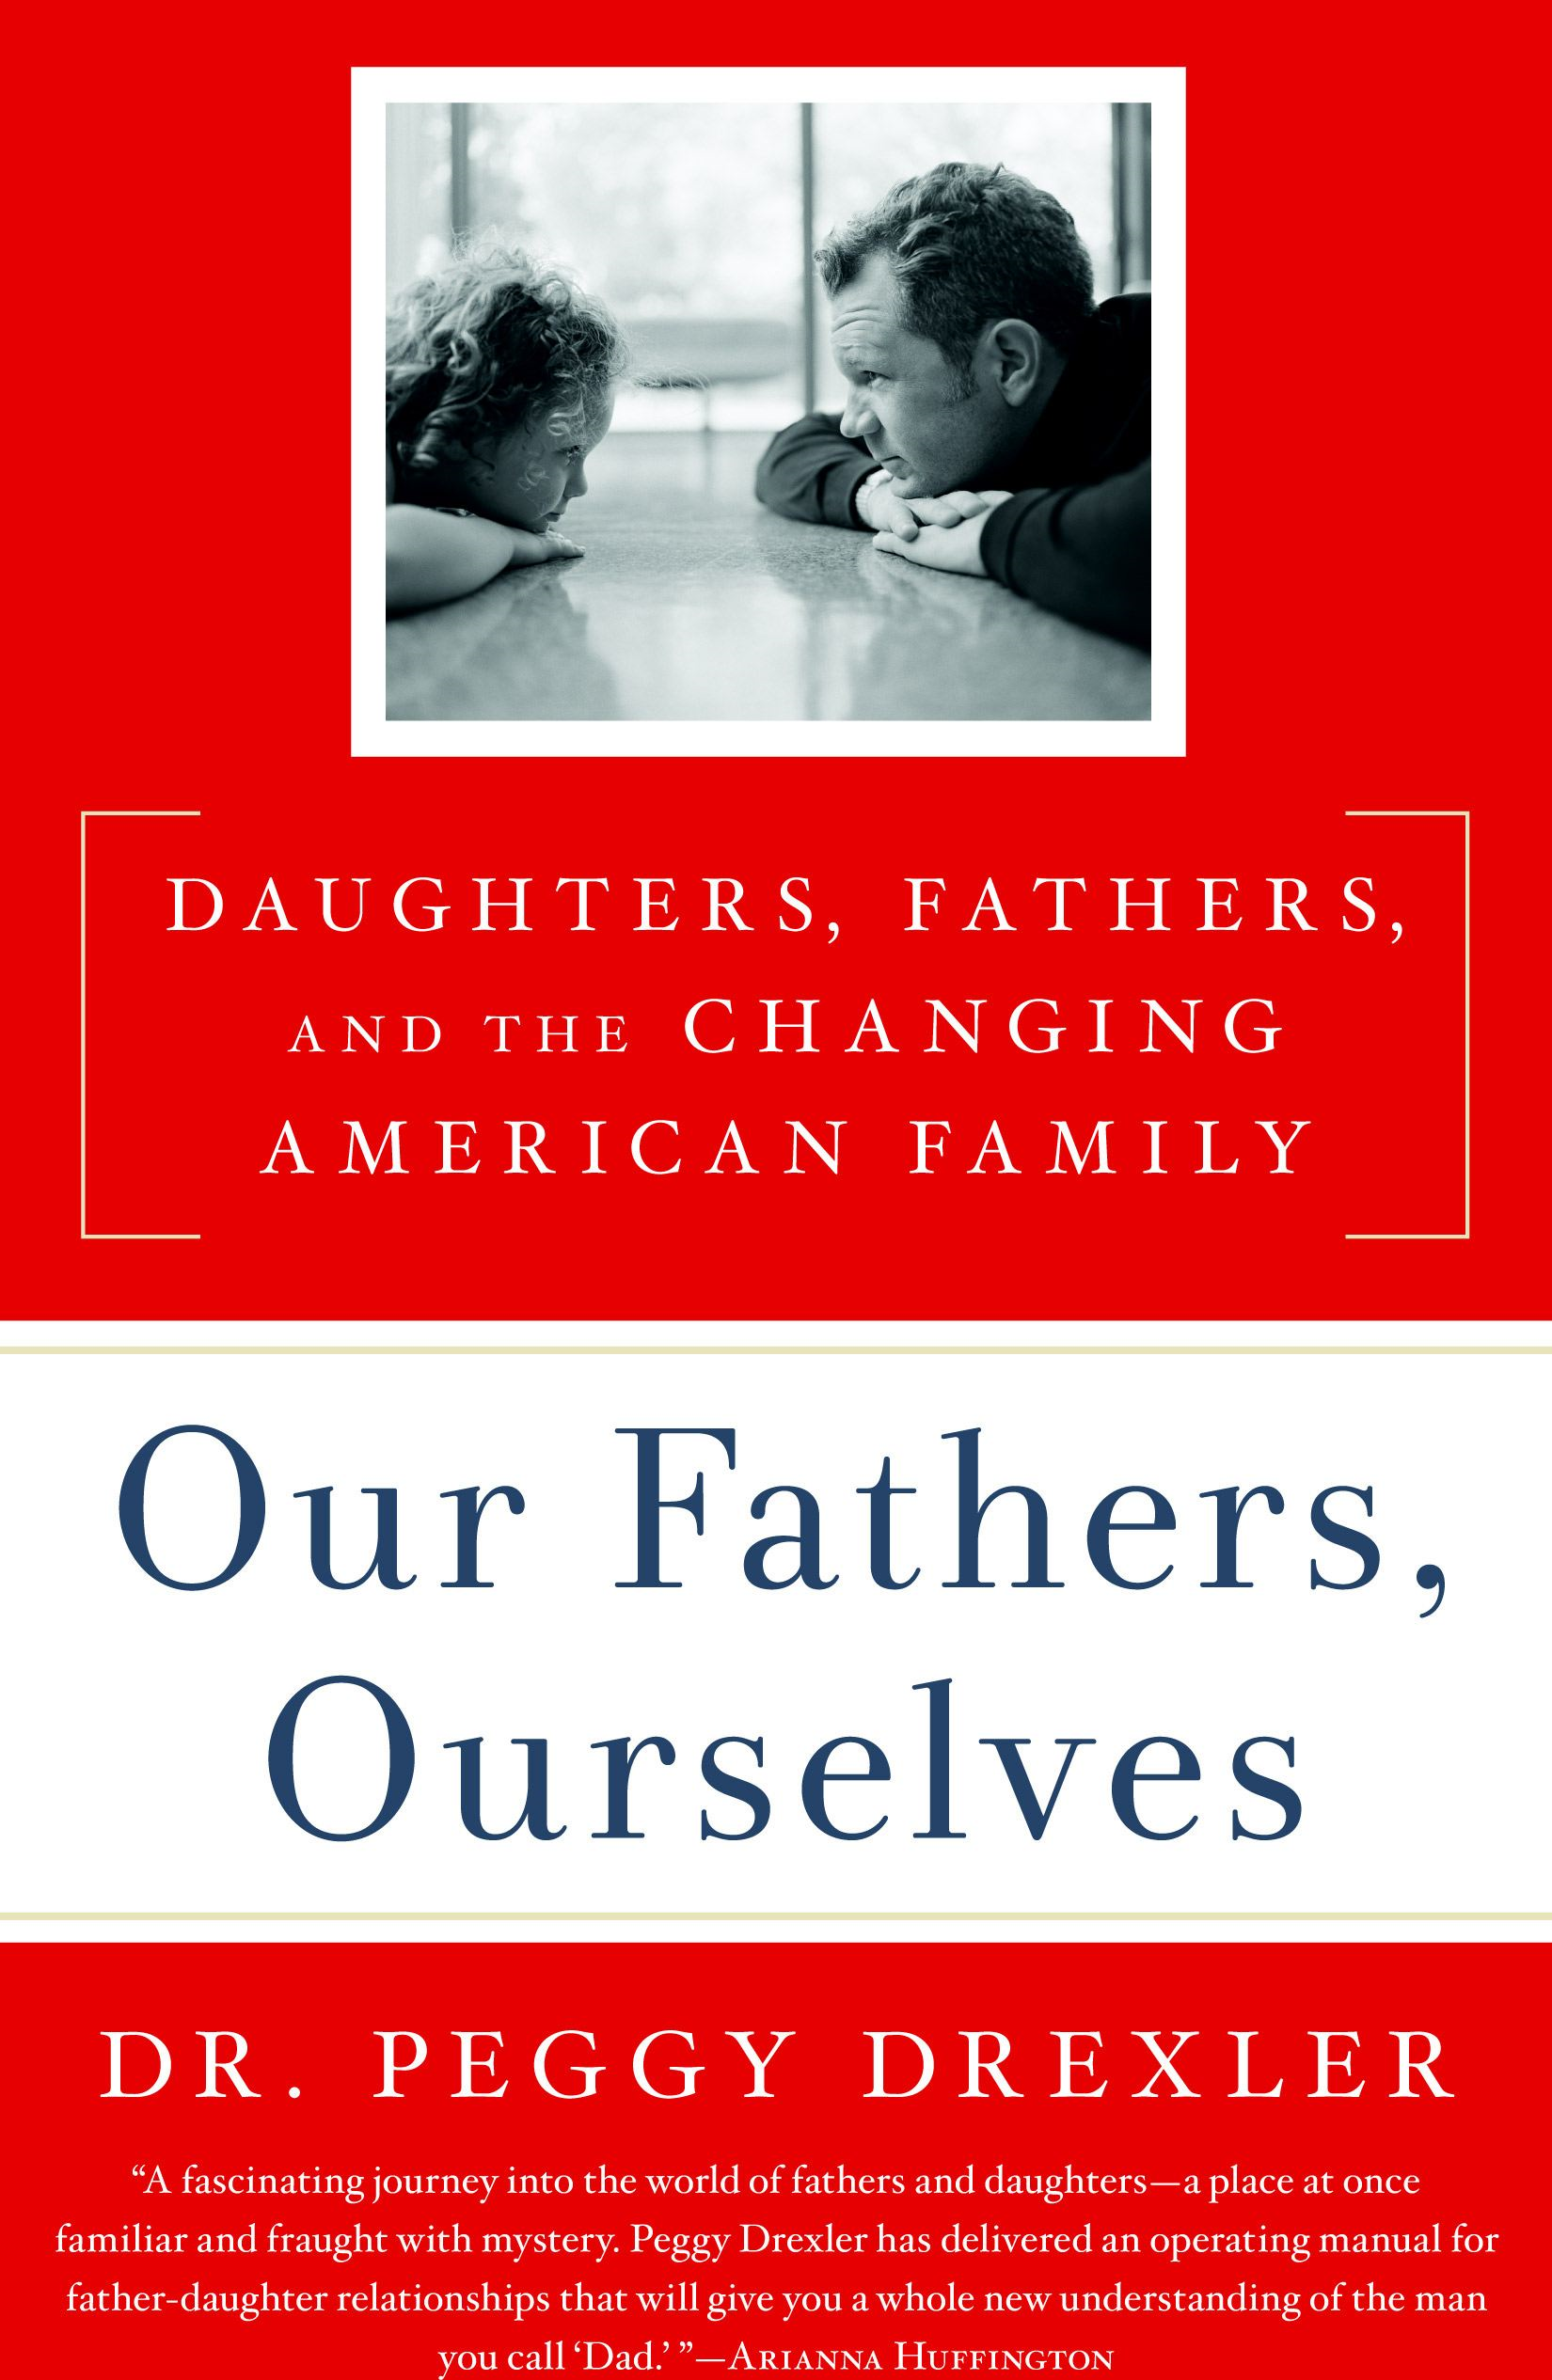 Our Fathers, Ourselves: Daughters, Fathers, and the Changing American Family By: Peggy Drexler